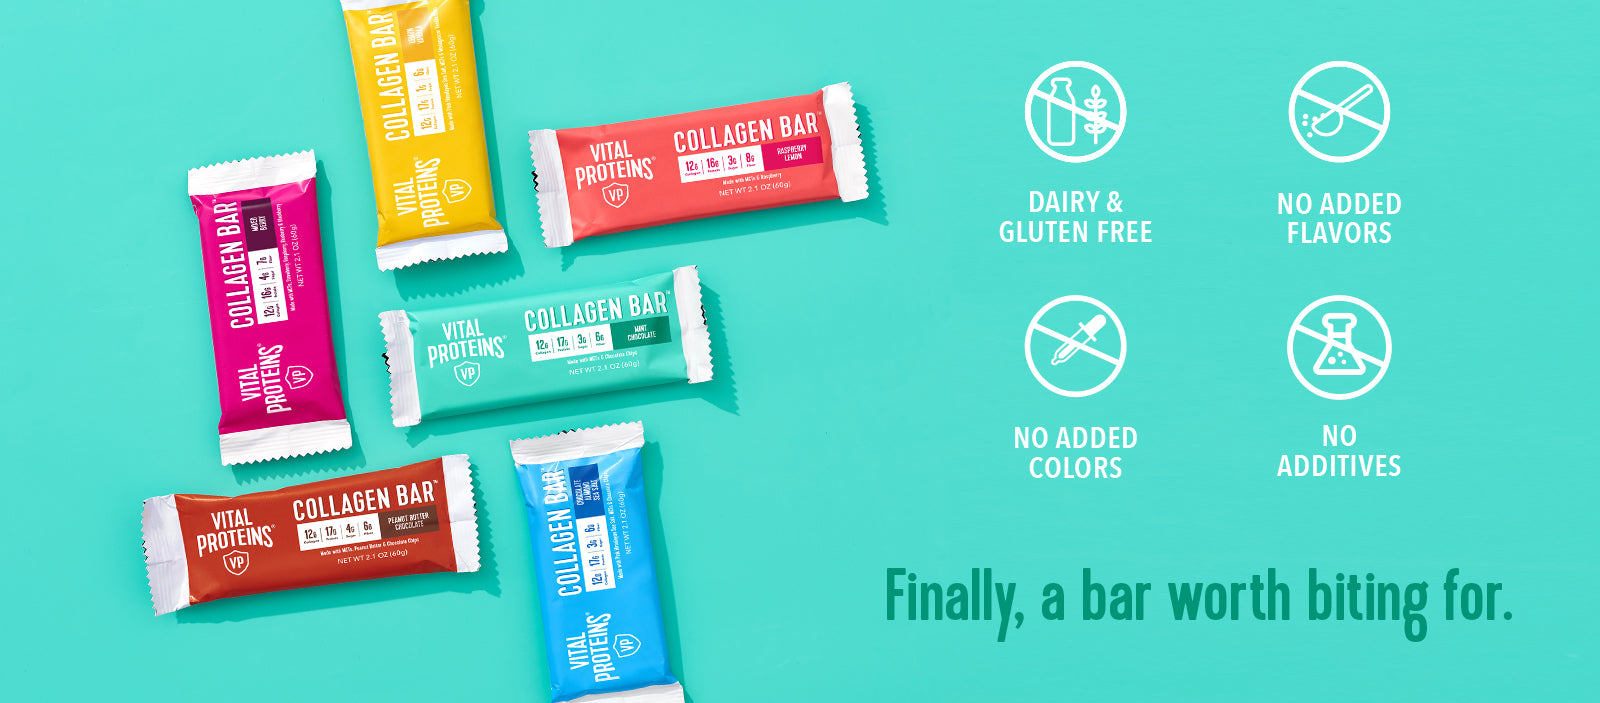 Collagen Bars are Dairy and Gluten free, contain no added flavors, colors, or additives. Finally, a bar worth biting for.